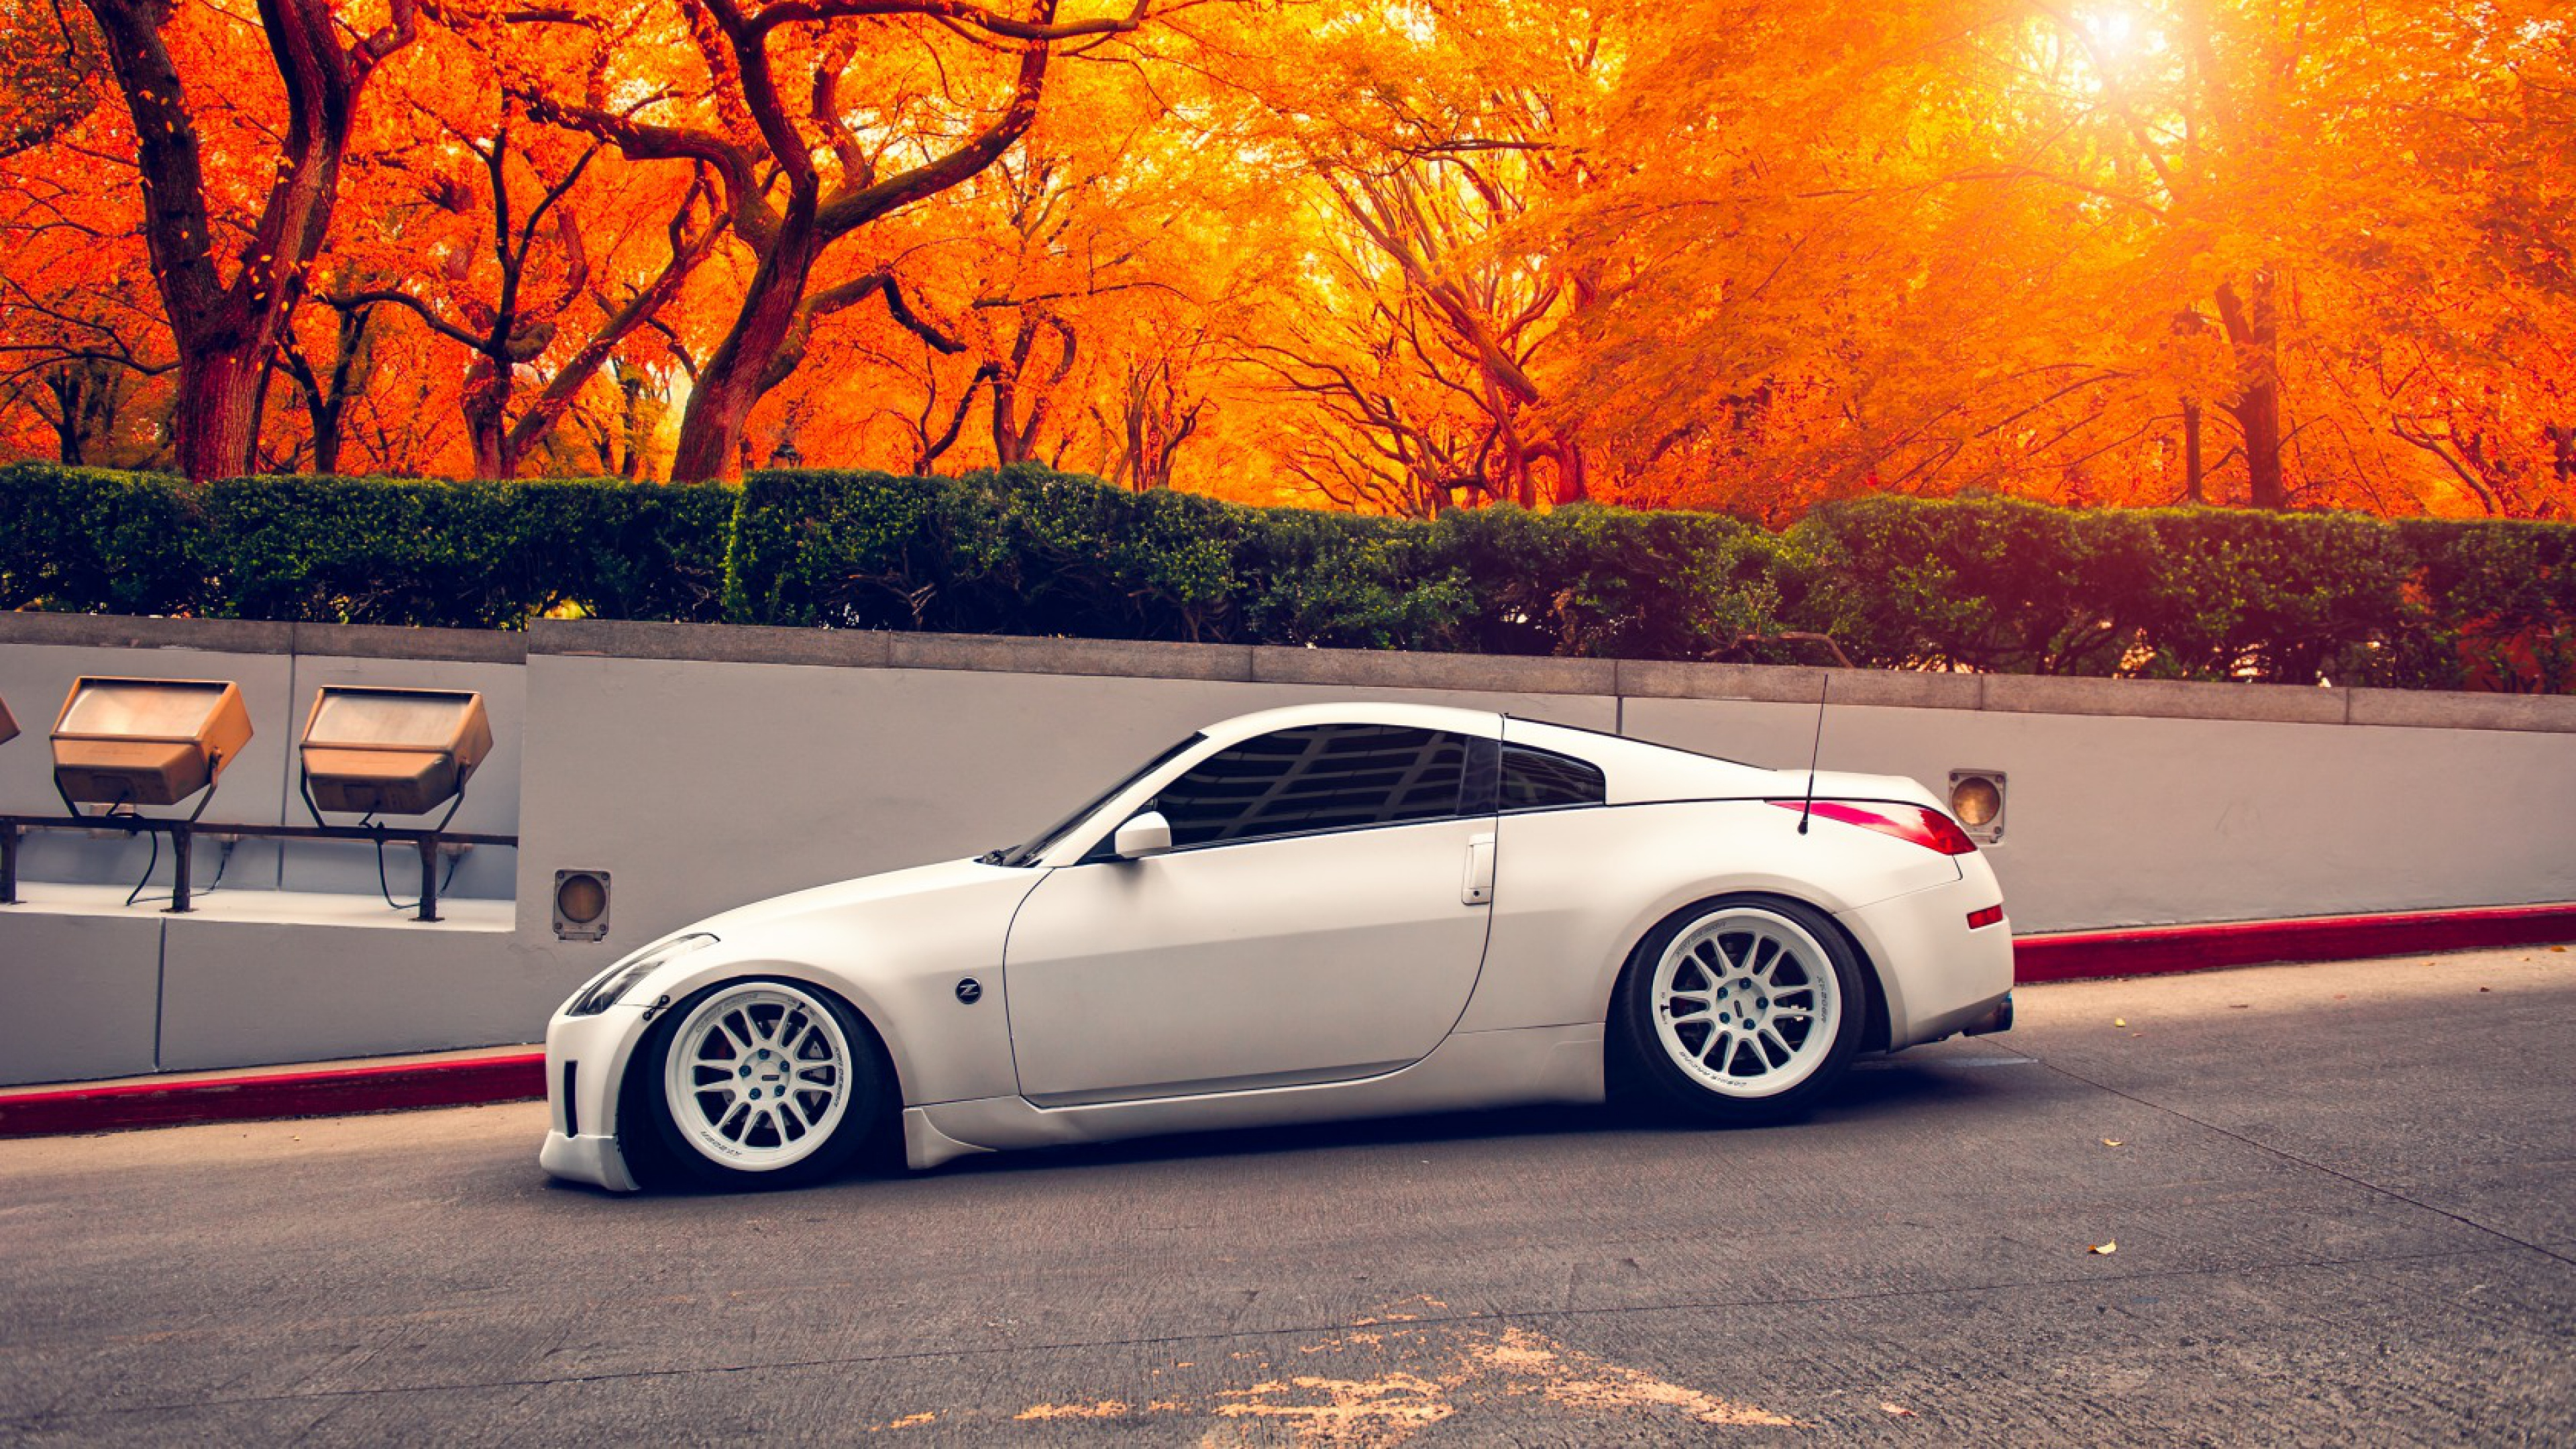 nissan 350z autumn hd cars 4k wallpapers images. Black Bedroom Furniture Sets. Home Design Ideas